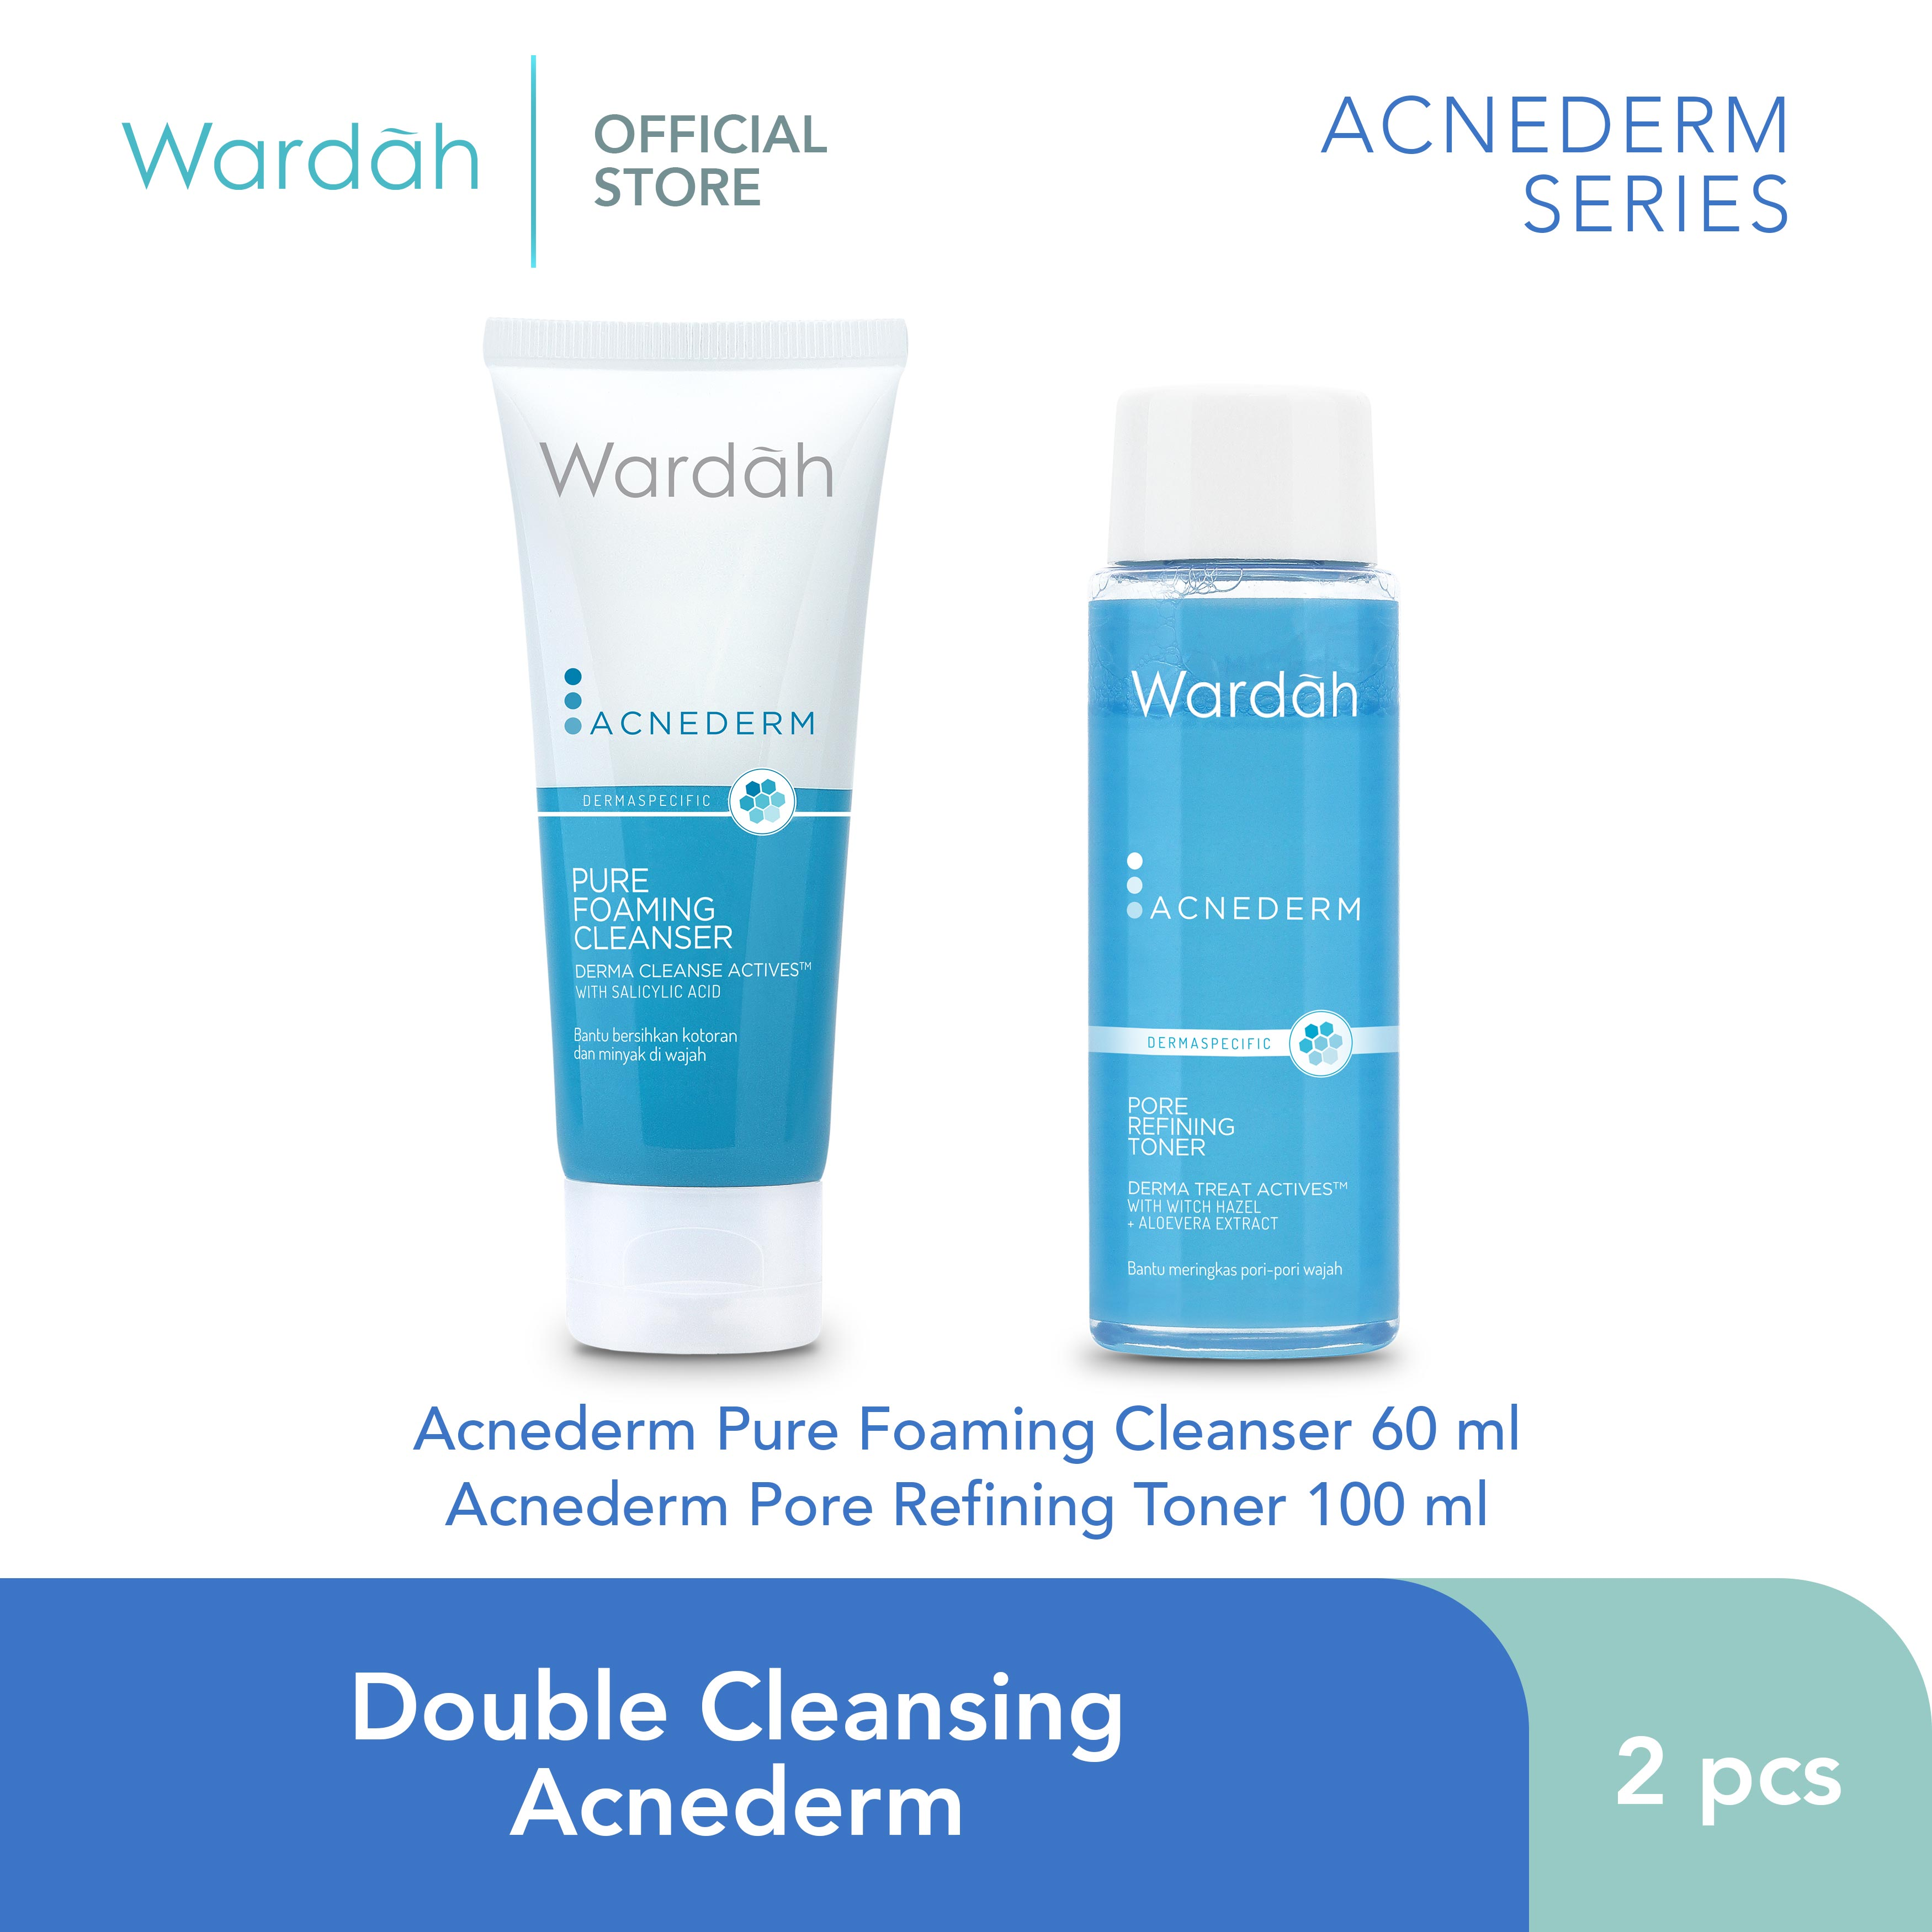 Double Cleansing Acnederm